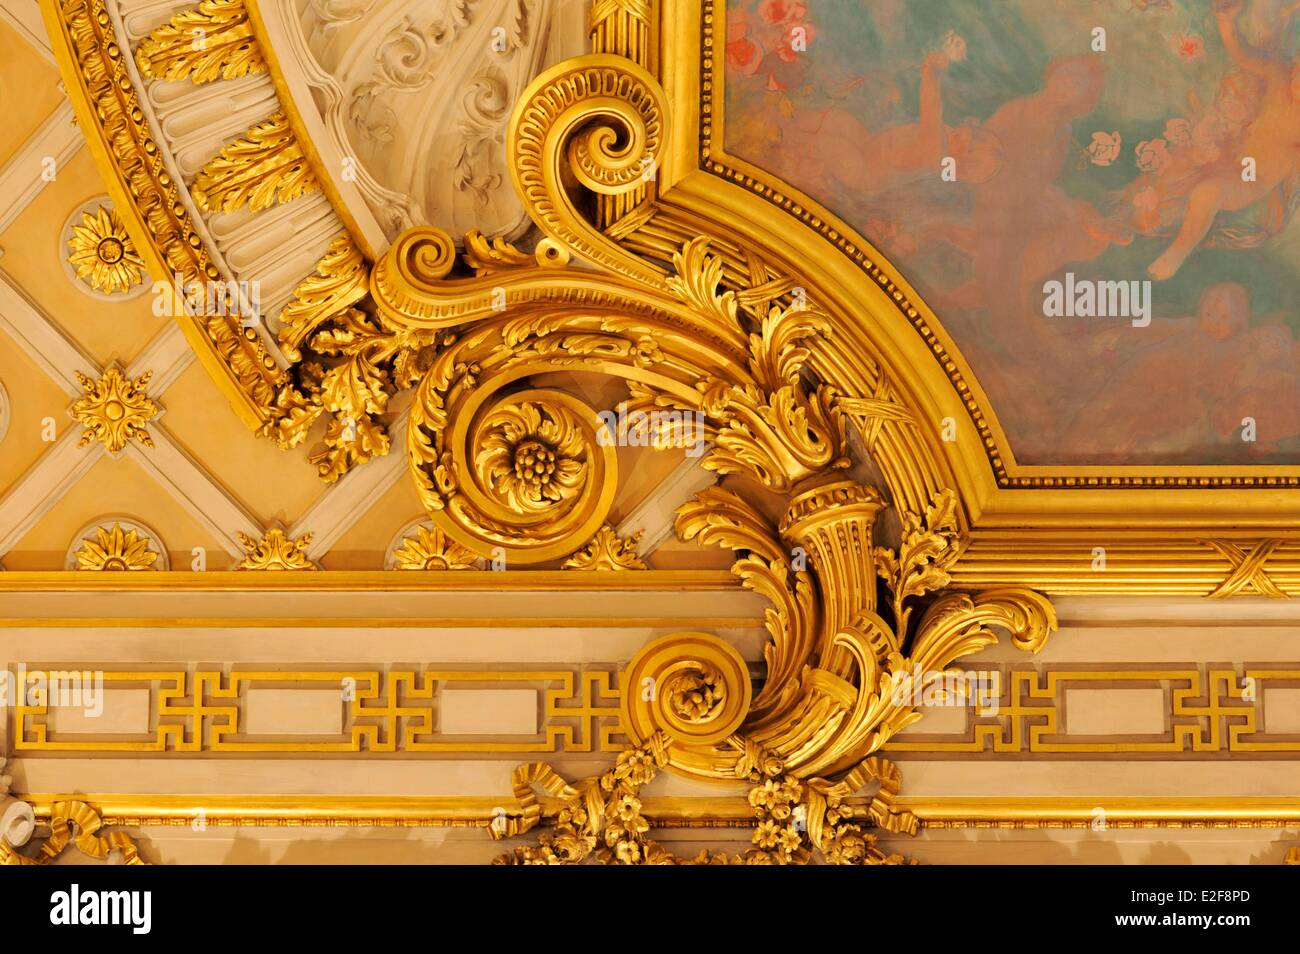 France Nord Lille Lille Opera the home ceiling decorated with a painting details of a sculpture in one of the corners - Stock Image